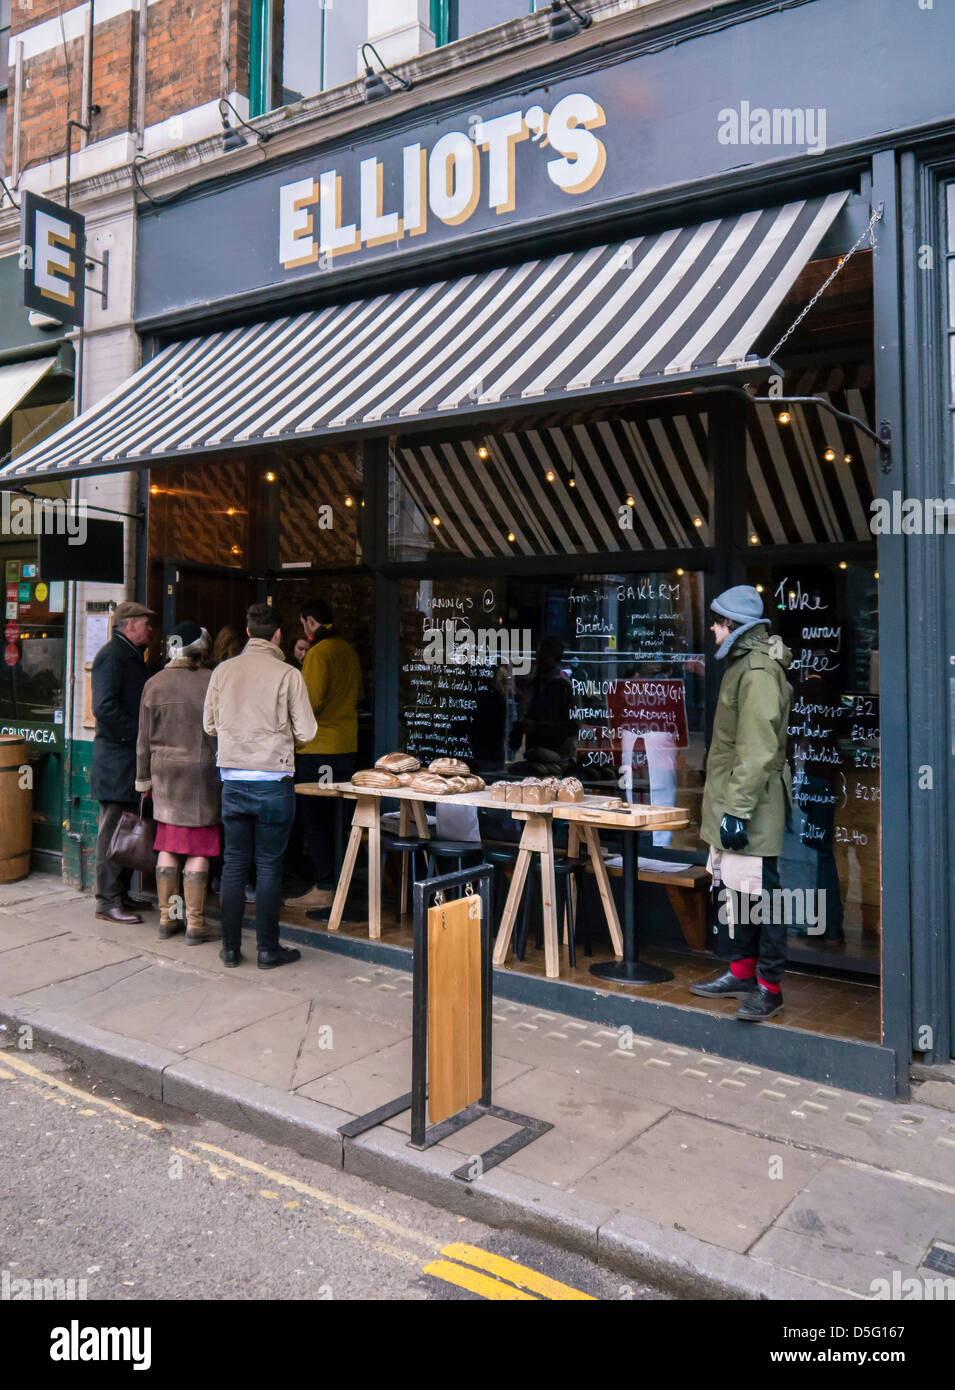 people-outside-elliots-bakery-and-cafe-c